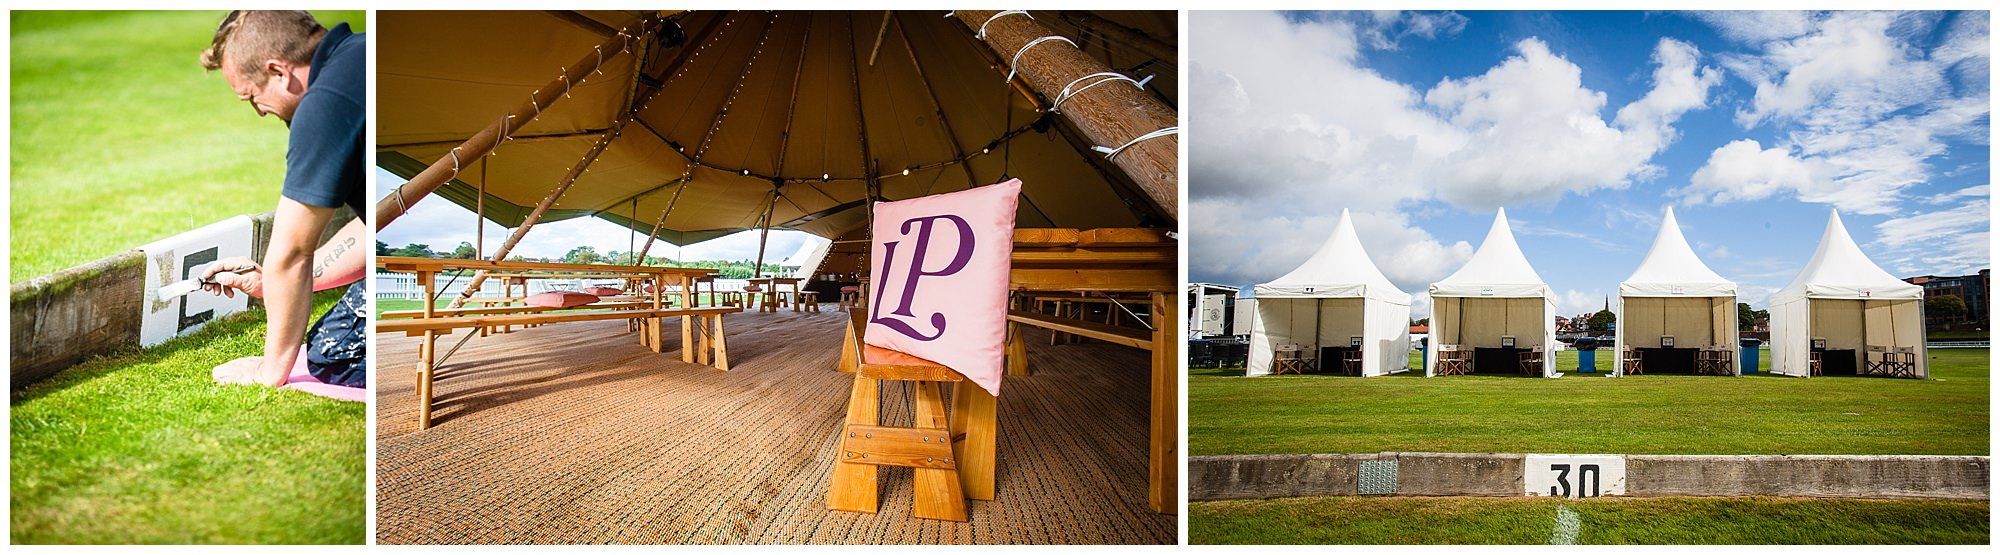 laurent perrier cushions in tipi at chester race course